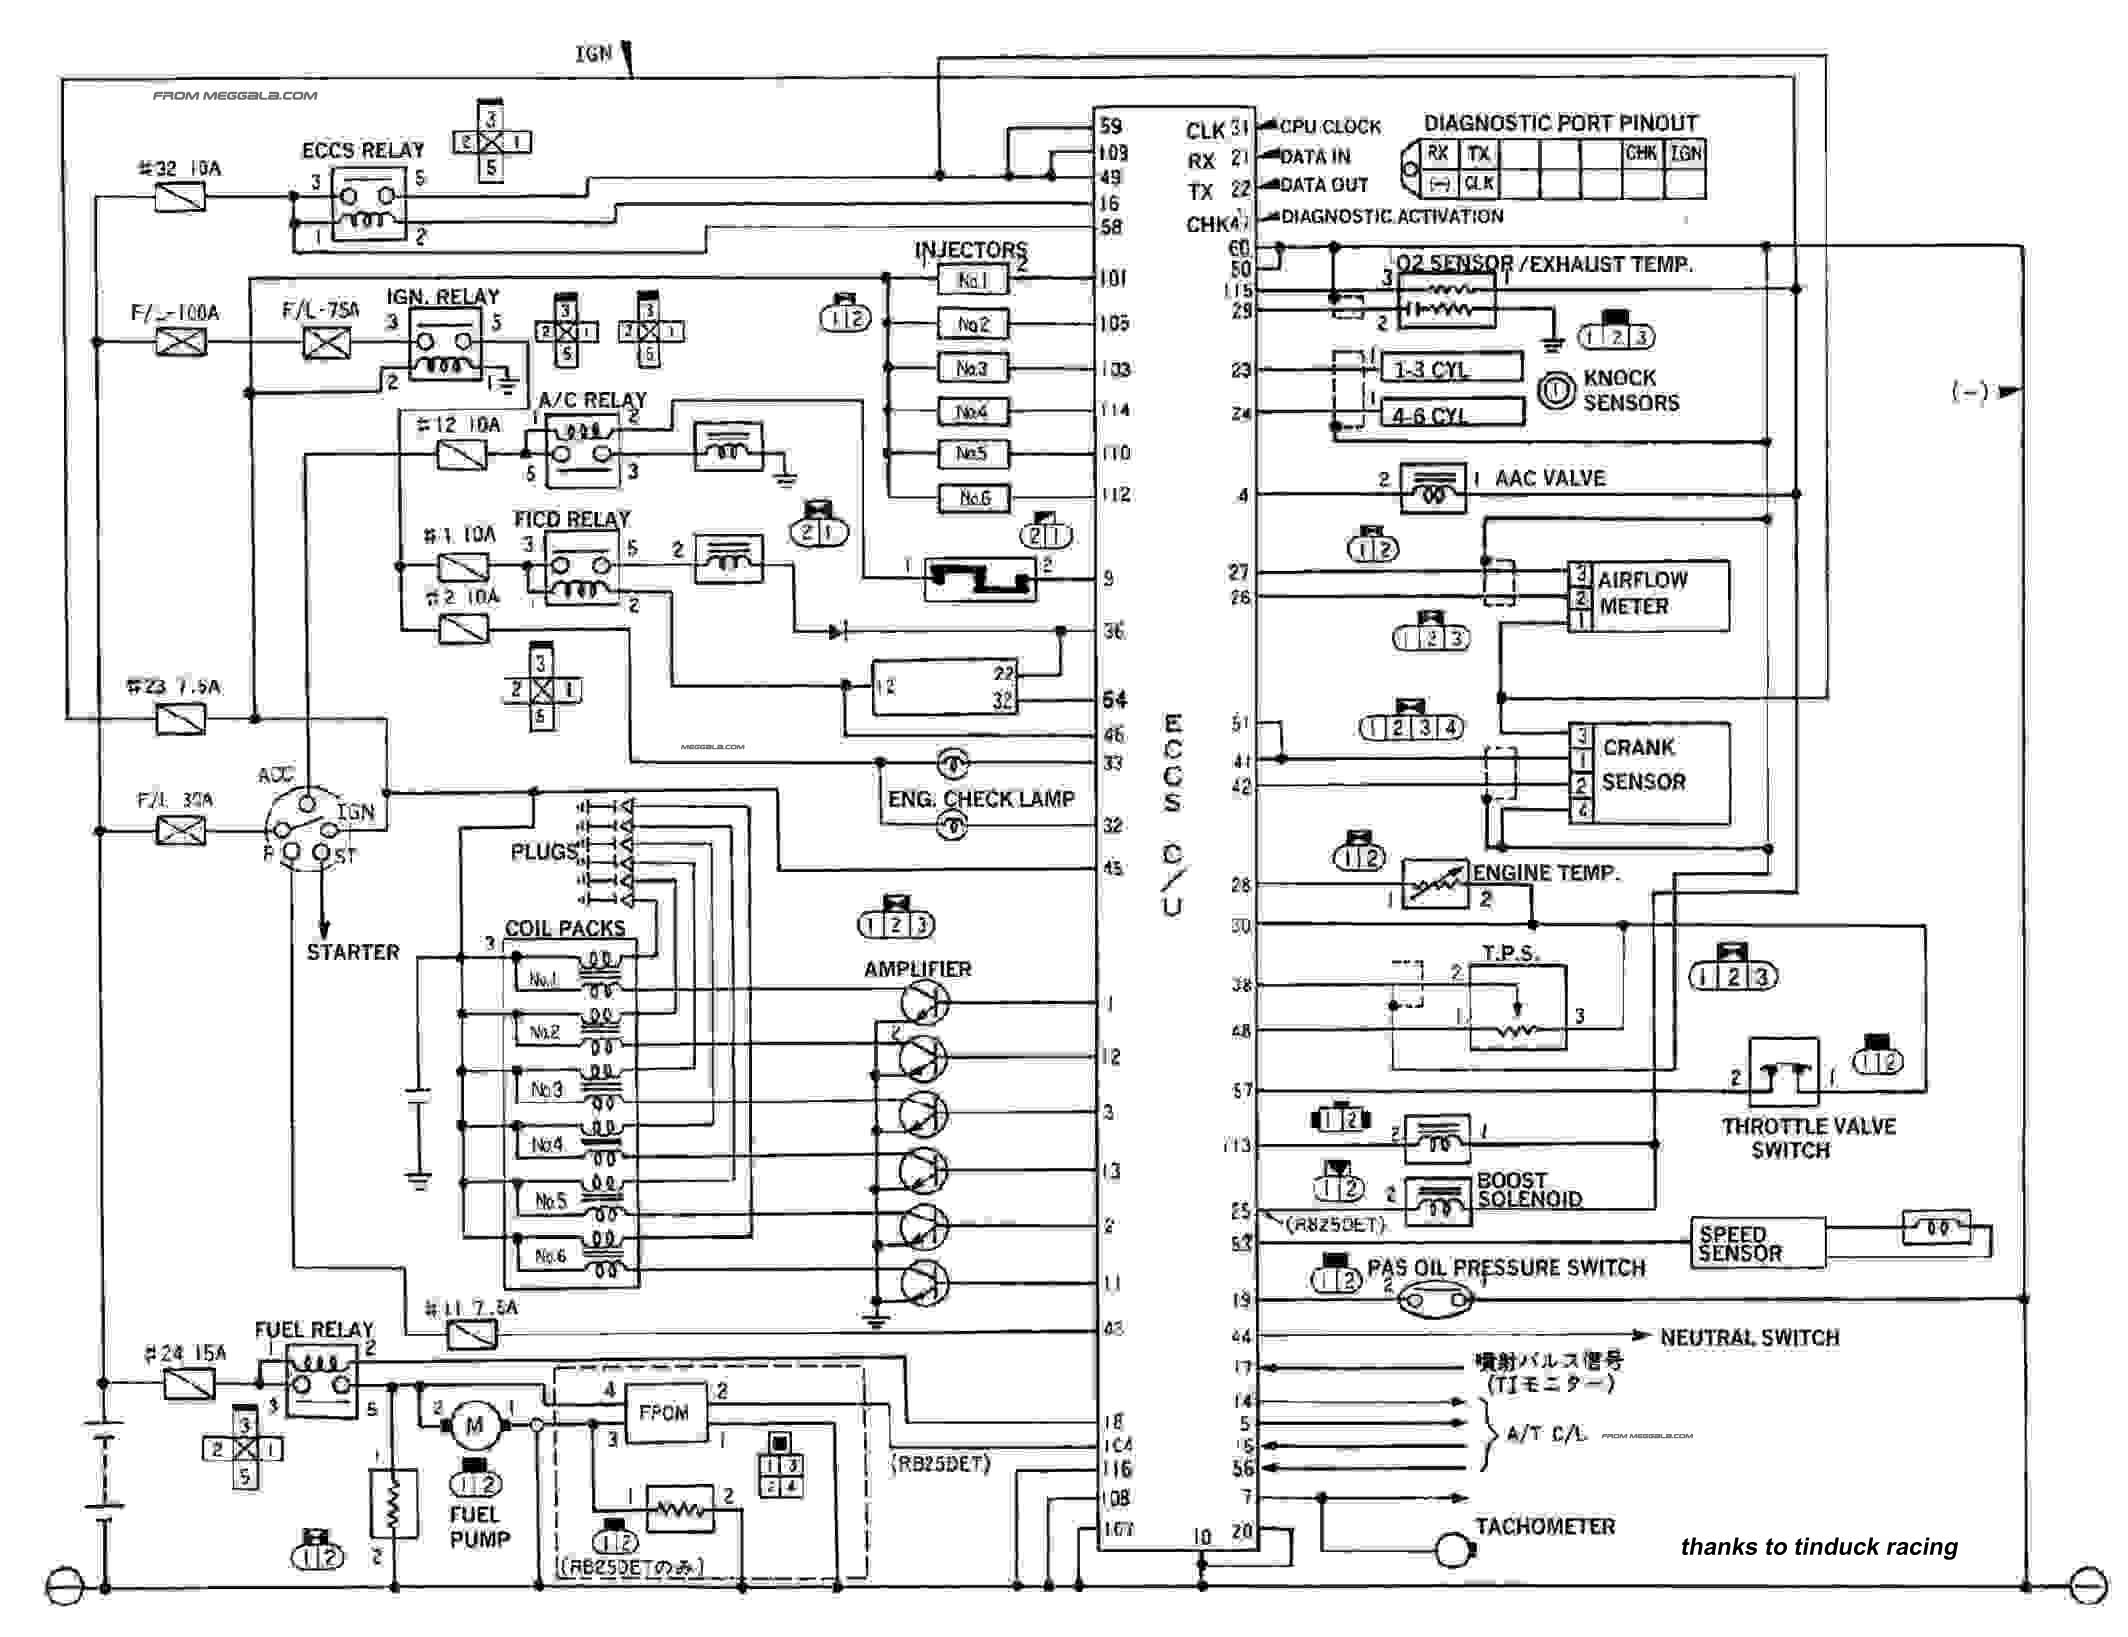 nissan documents 1996 nissan sentra ignition wiring diagram 1996 nissan  sentra wiring diagram